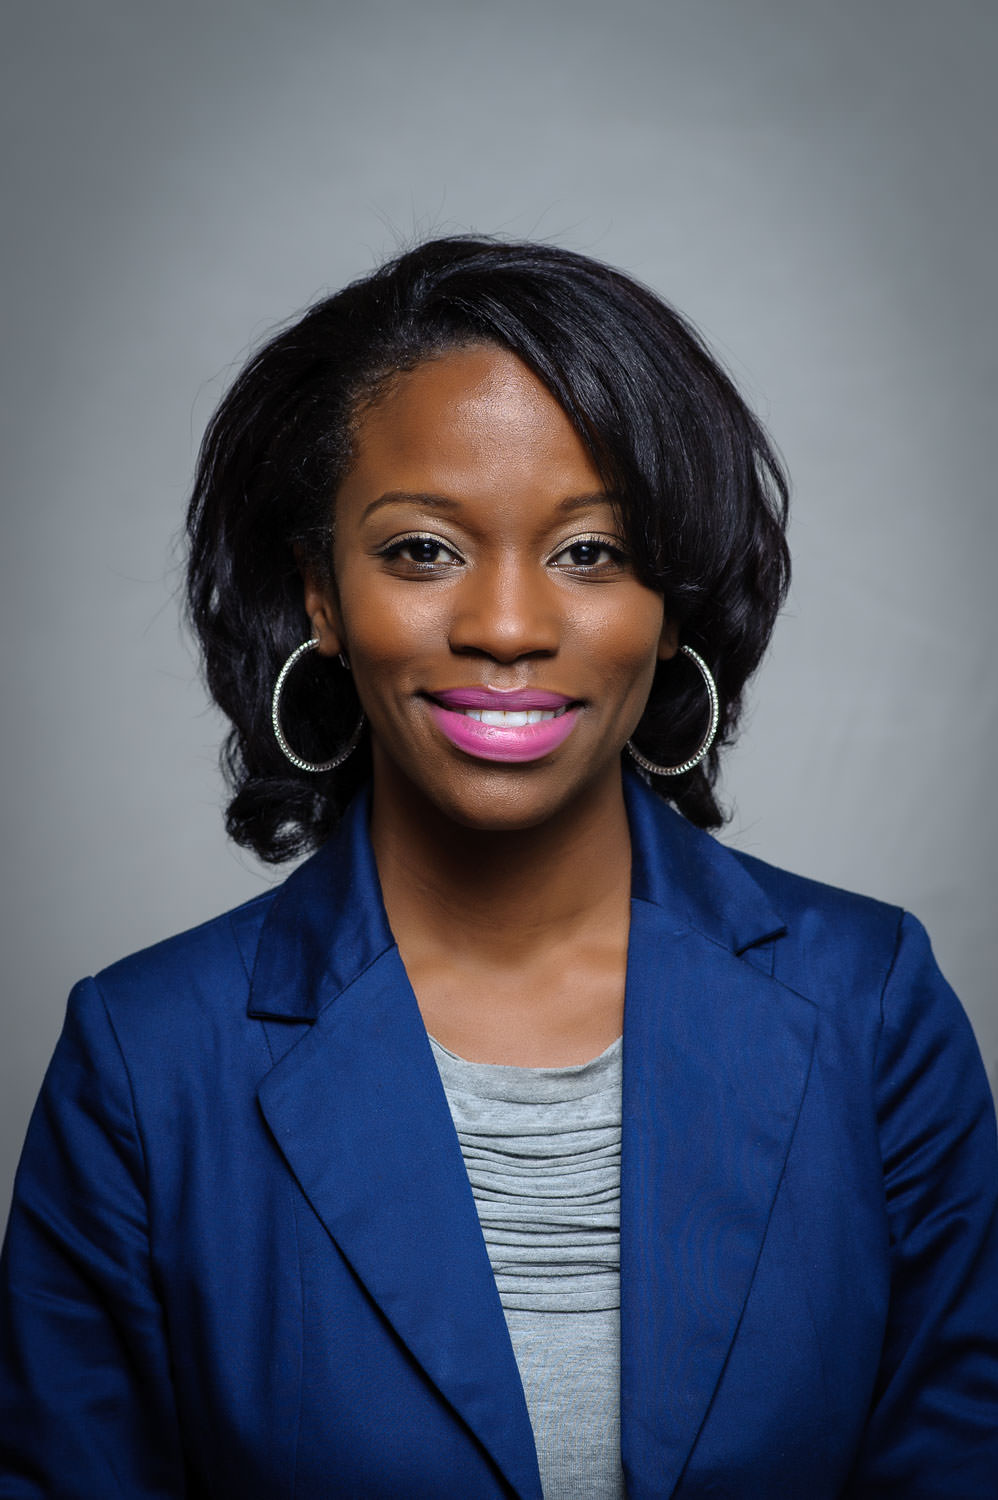 professional headshot photo of a smiling African-American woman